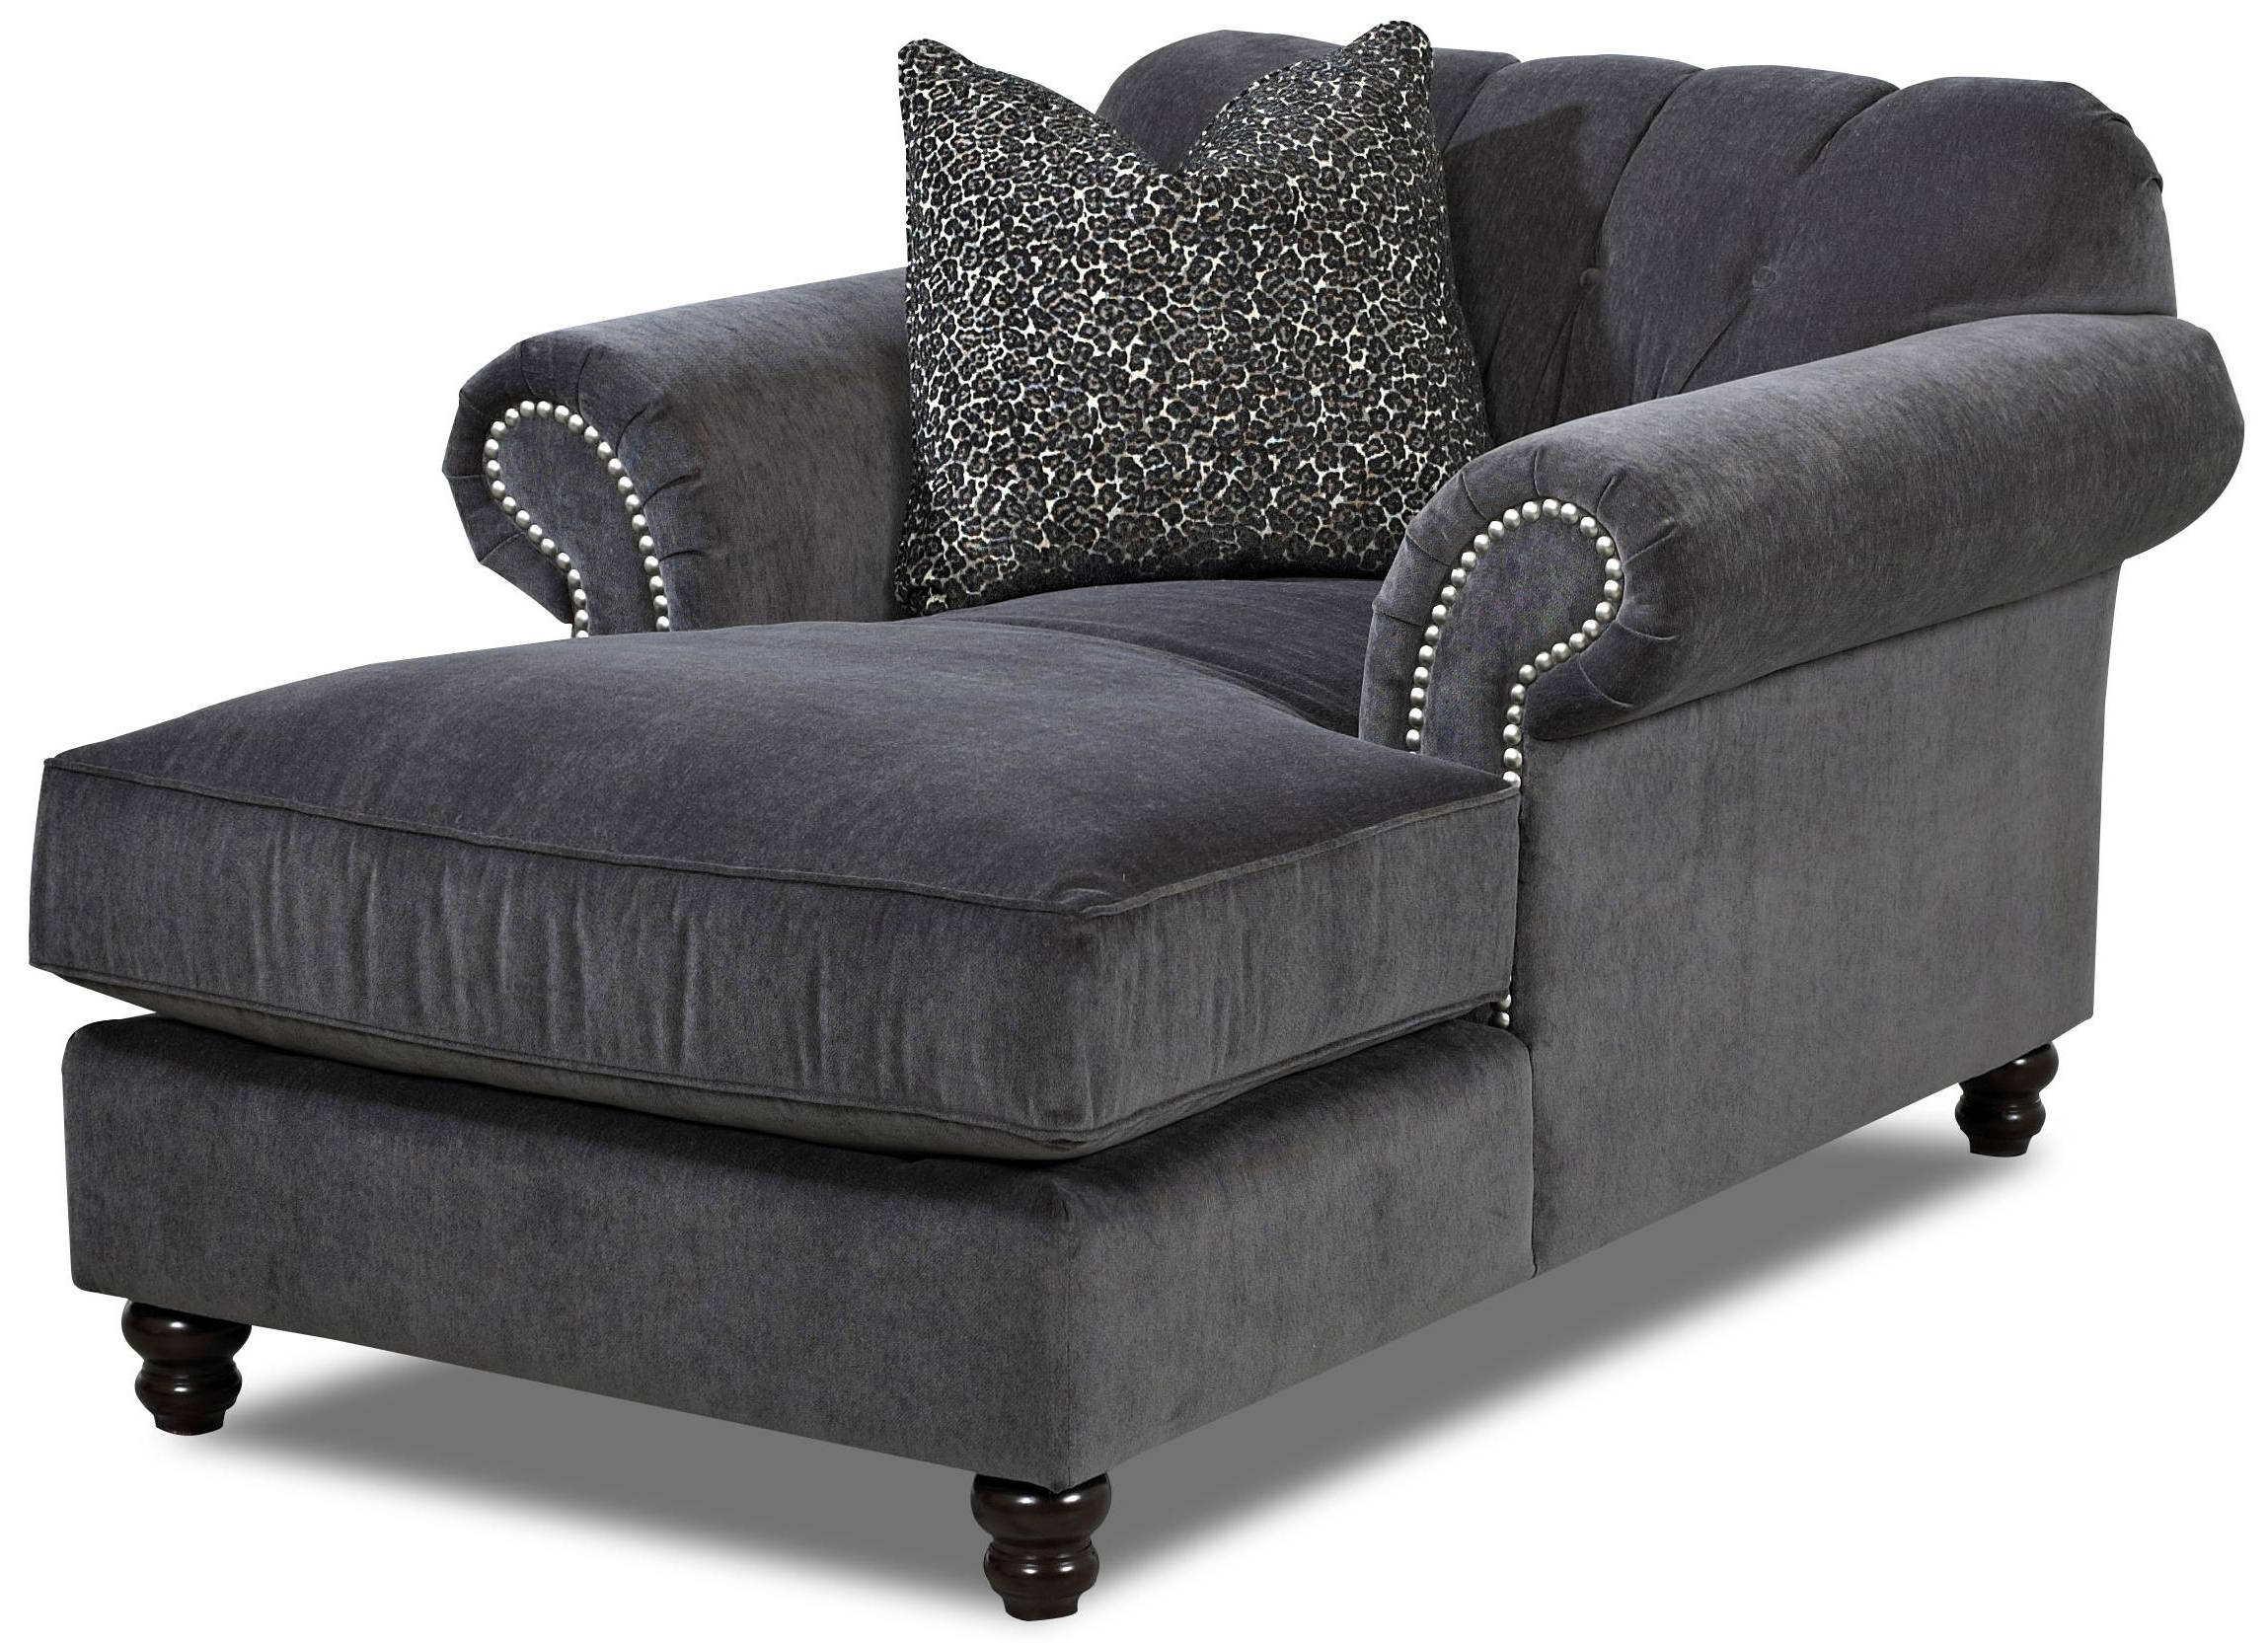 Lounge Chair : Lounge Indoor Accent Chairs For Living Room In Best And Newest Velvet Chaise Lounge Chairs (View 12 of 15)